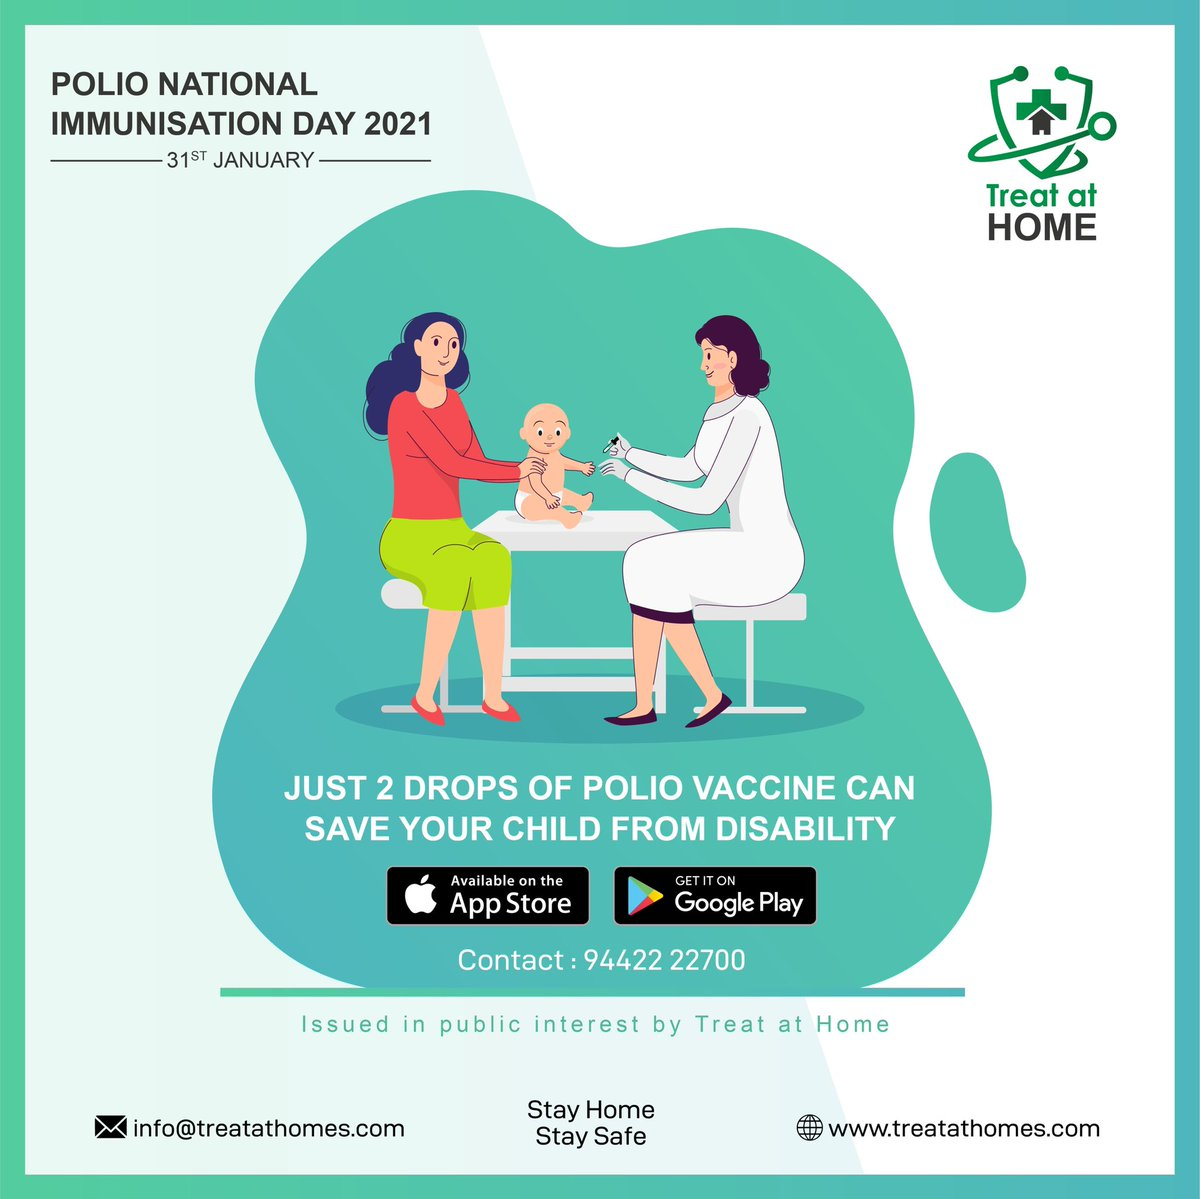 According to a statement by @MoHFW_INDIA , Polio Immunisation Day has been scheduled on 31st January 2021. Let's spread the word and vaccinate every last child, Let's end polio together #EndPolio #HealthForAll #NationalImmunizationDay #TreatatHome